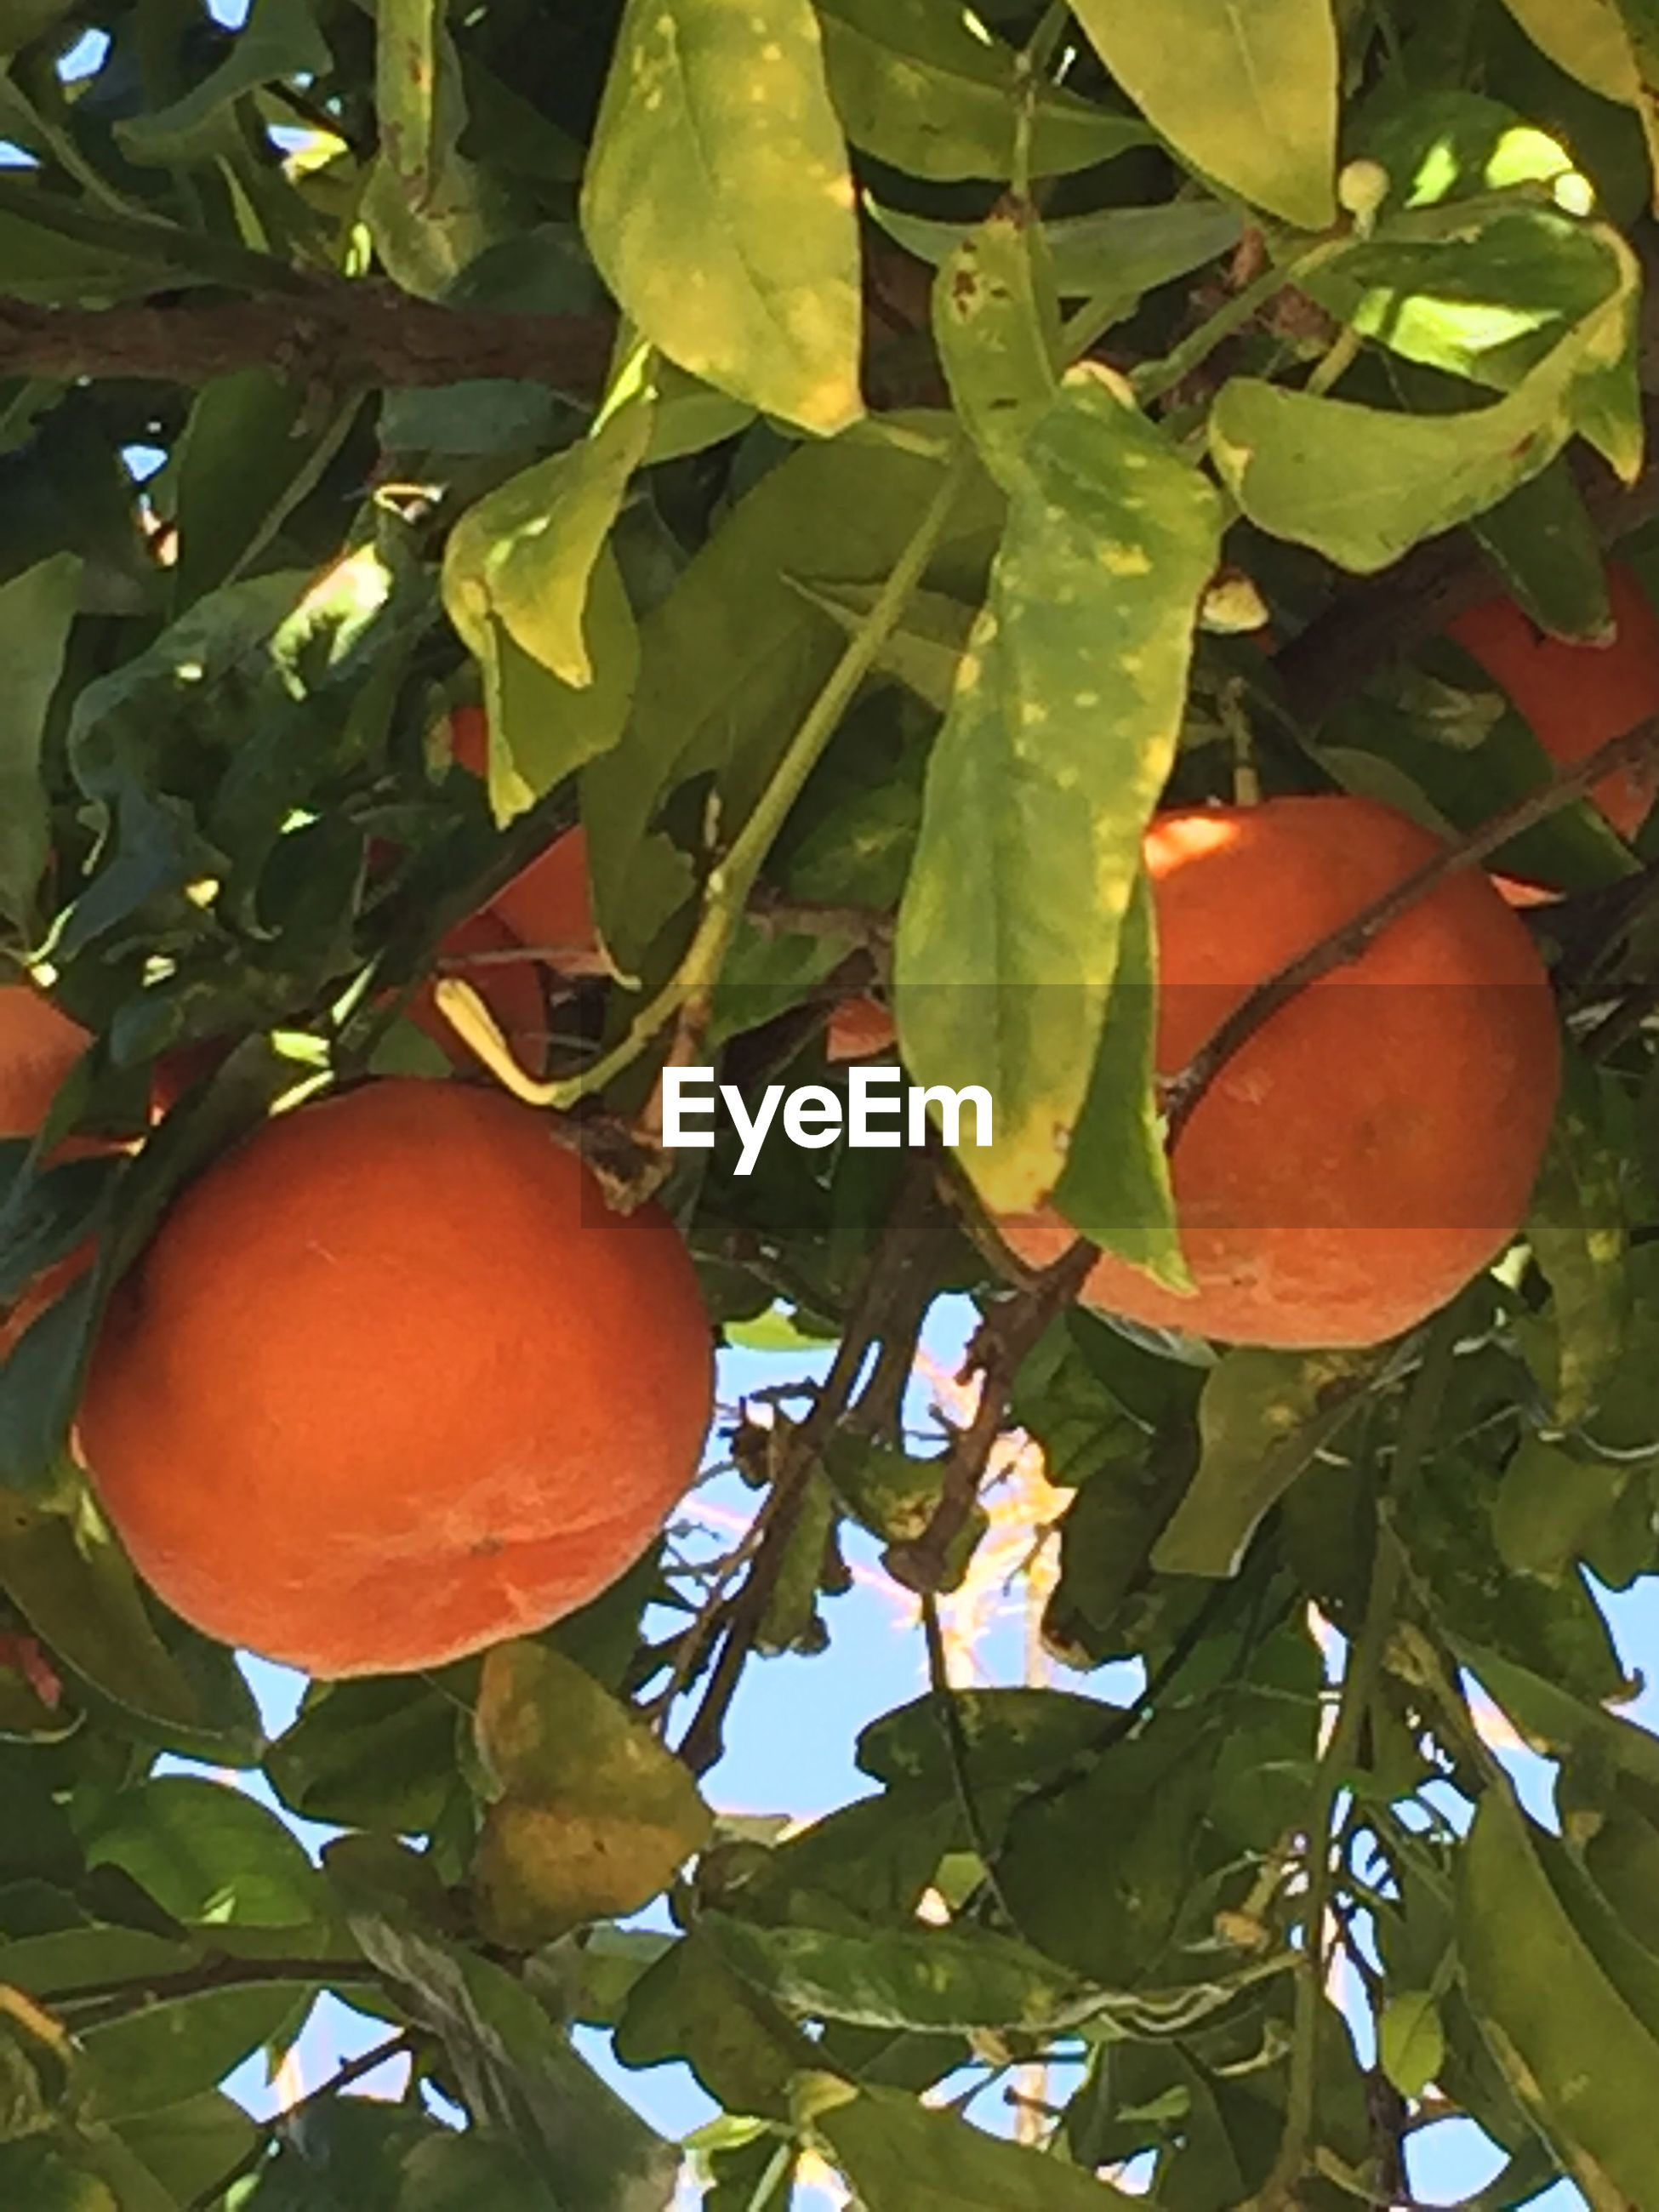 fruit, leaf, food and drink, growth, food, tree, healthy eating, freshness, no people, citrus fruit, agriculture, orange tree, green color, day, hanging, nature, outdoors, close-up, branch, beauty in nature